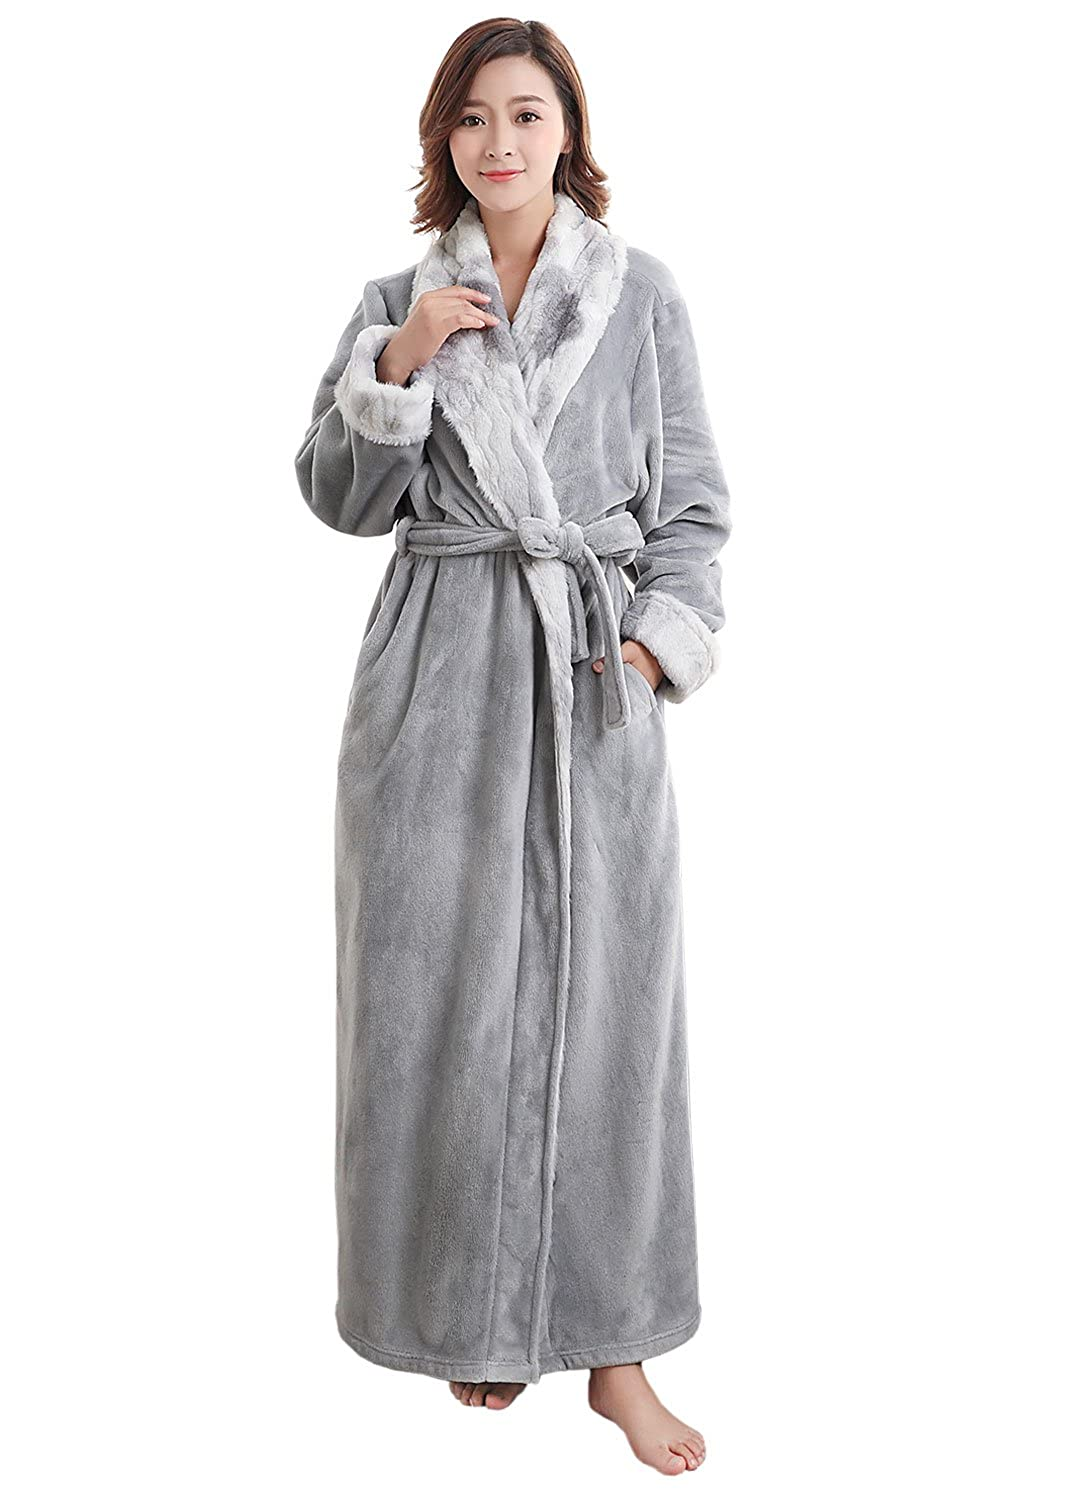 a376765f58 Ladies Bathrobe Soft Plush Warm Flannel Spa Long Bath Robe for Women  Sleepwear Winter